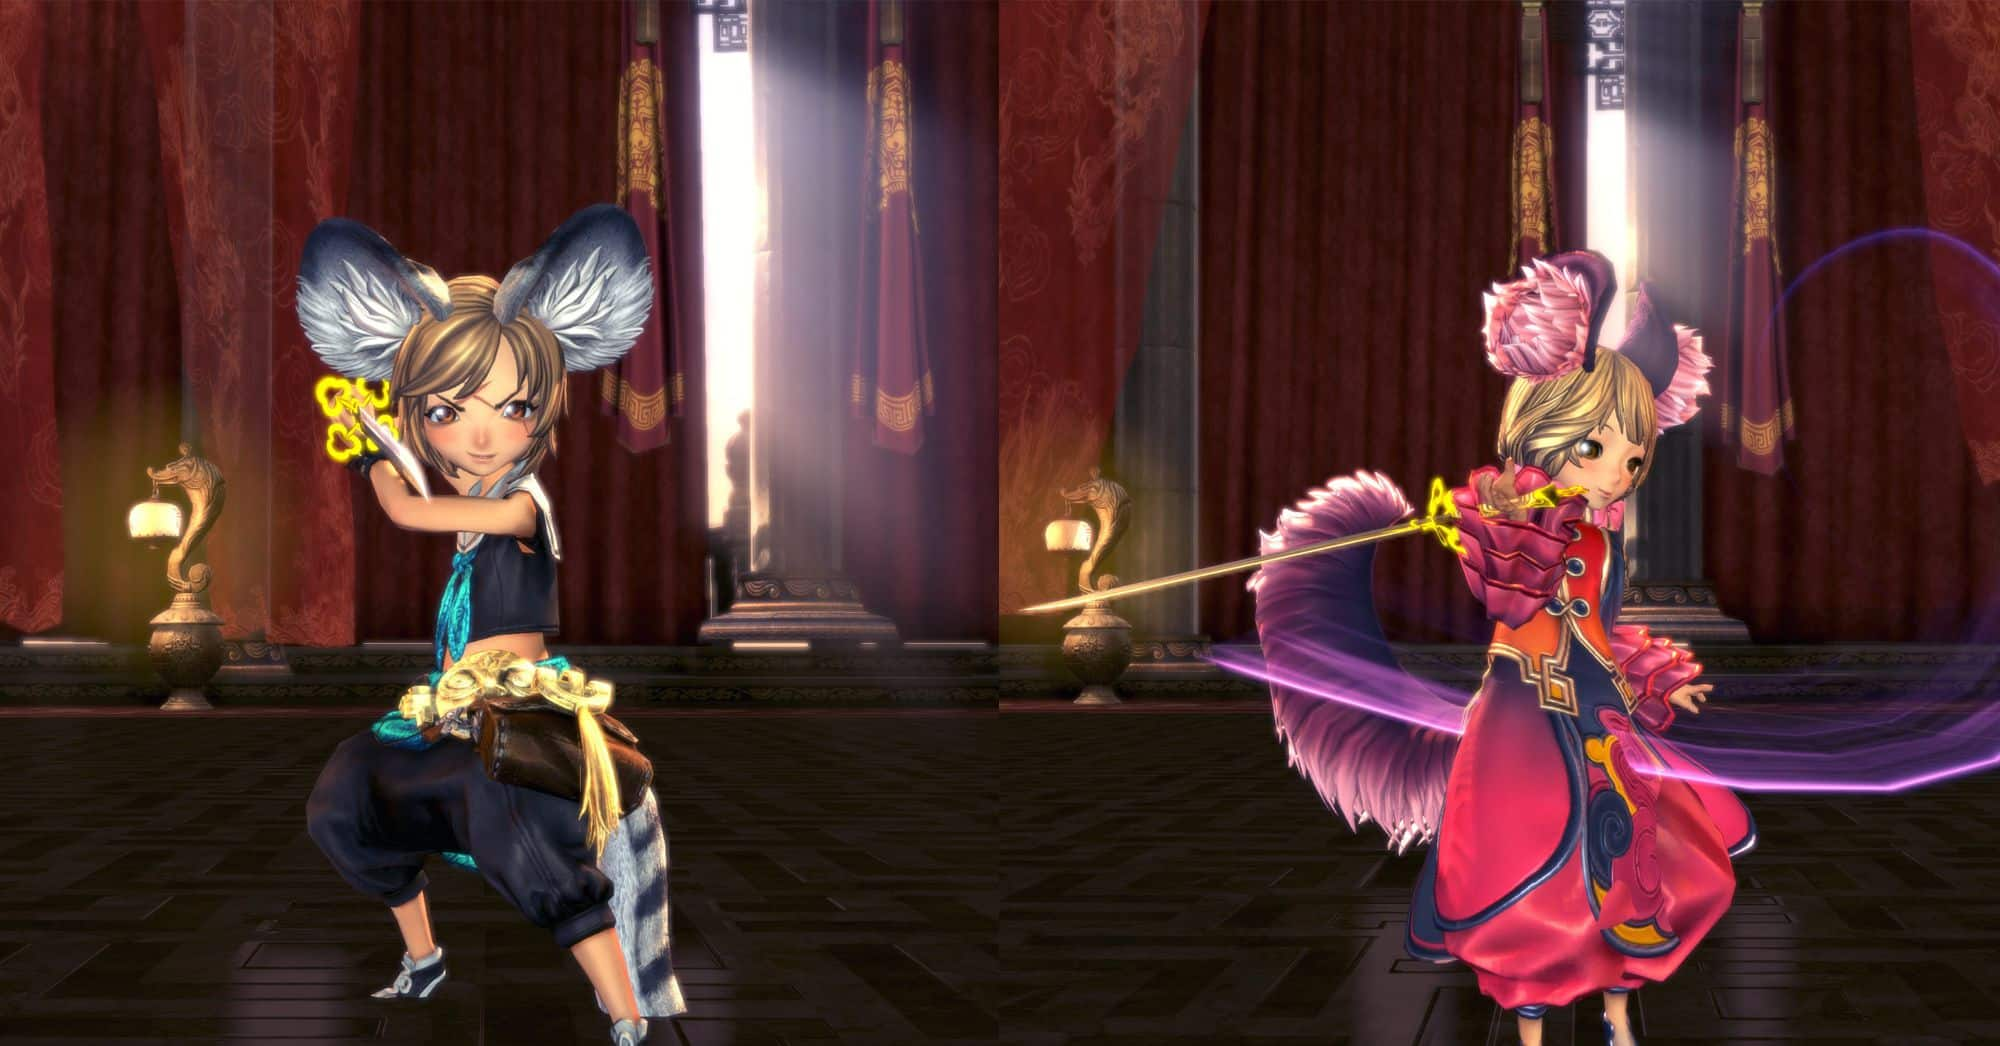 Blade Dancer, Blade & Soul Class, Male Lyn & Female Lyn